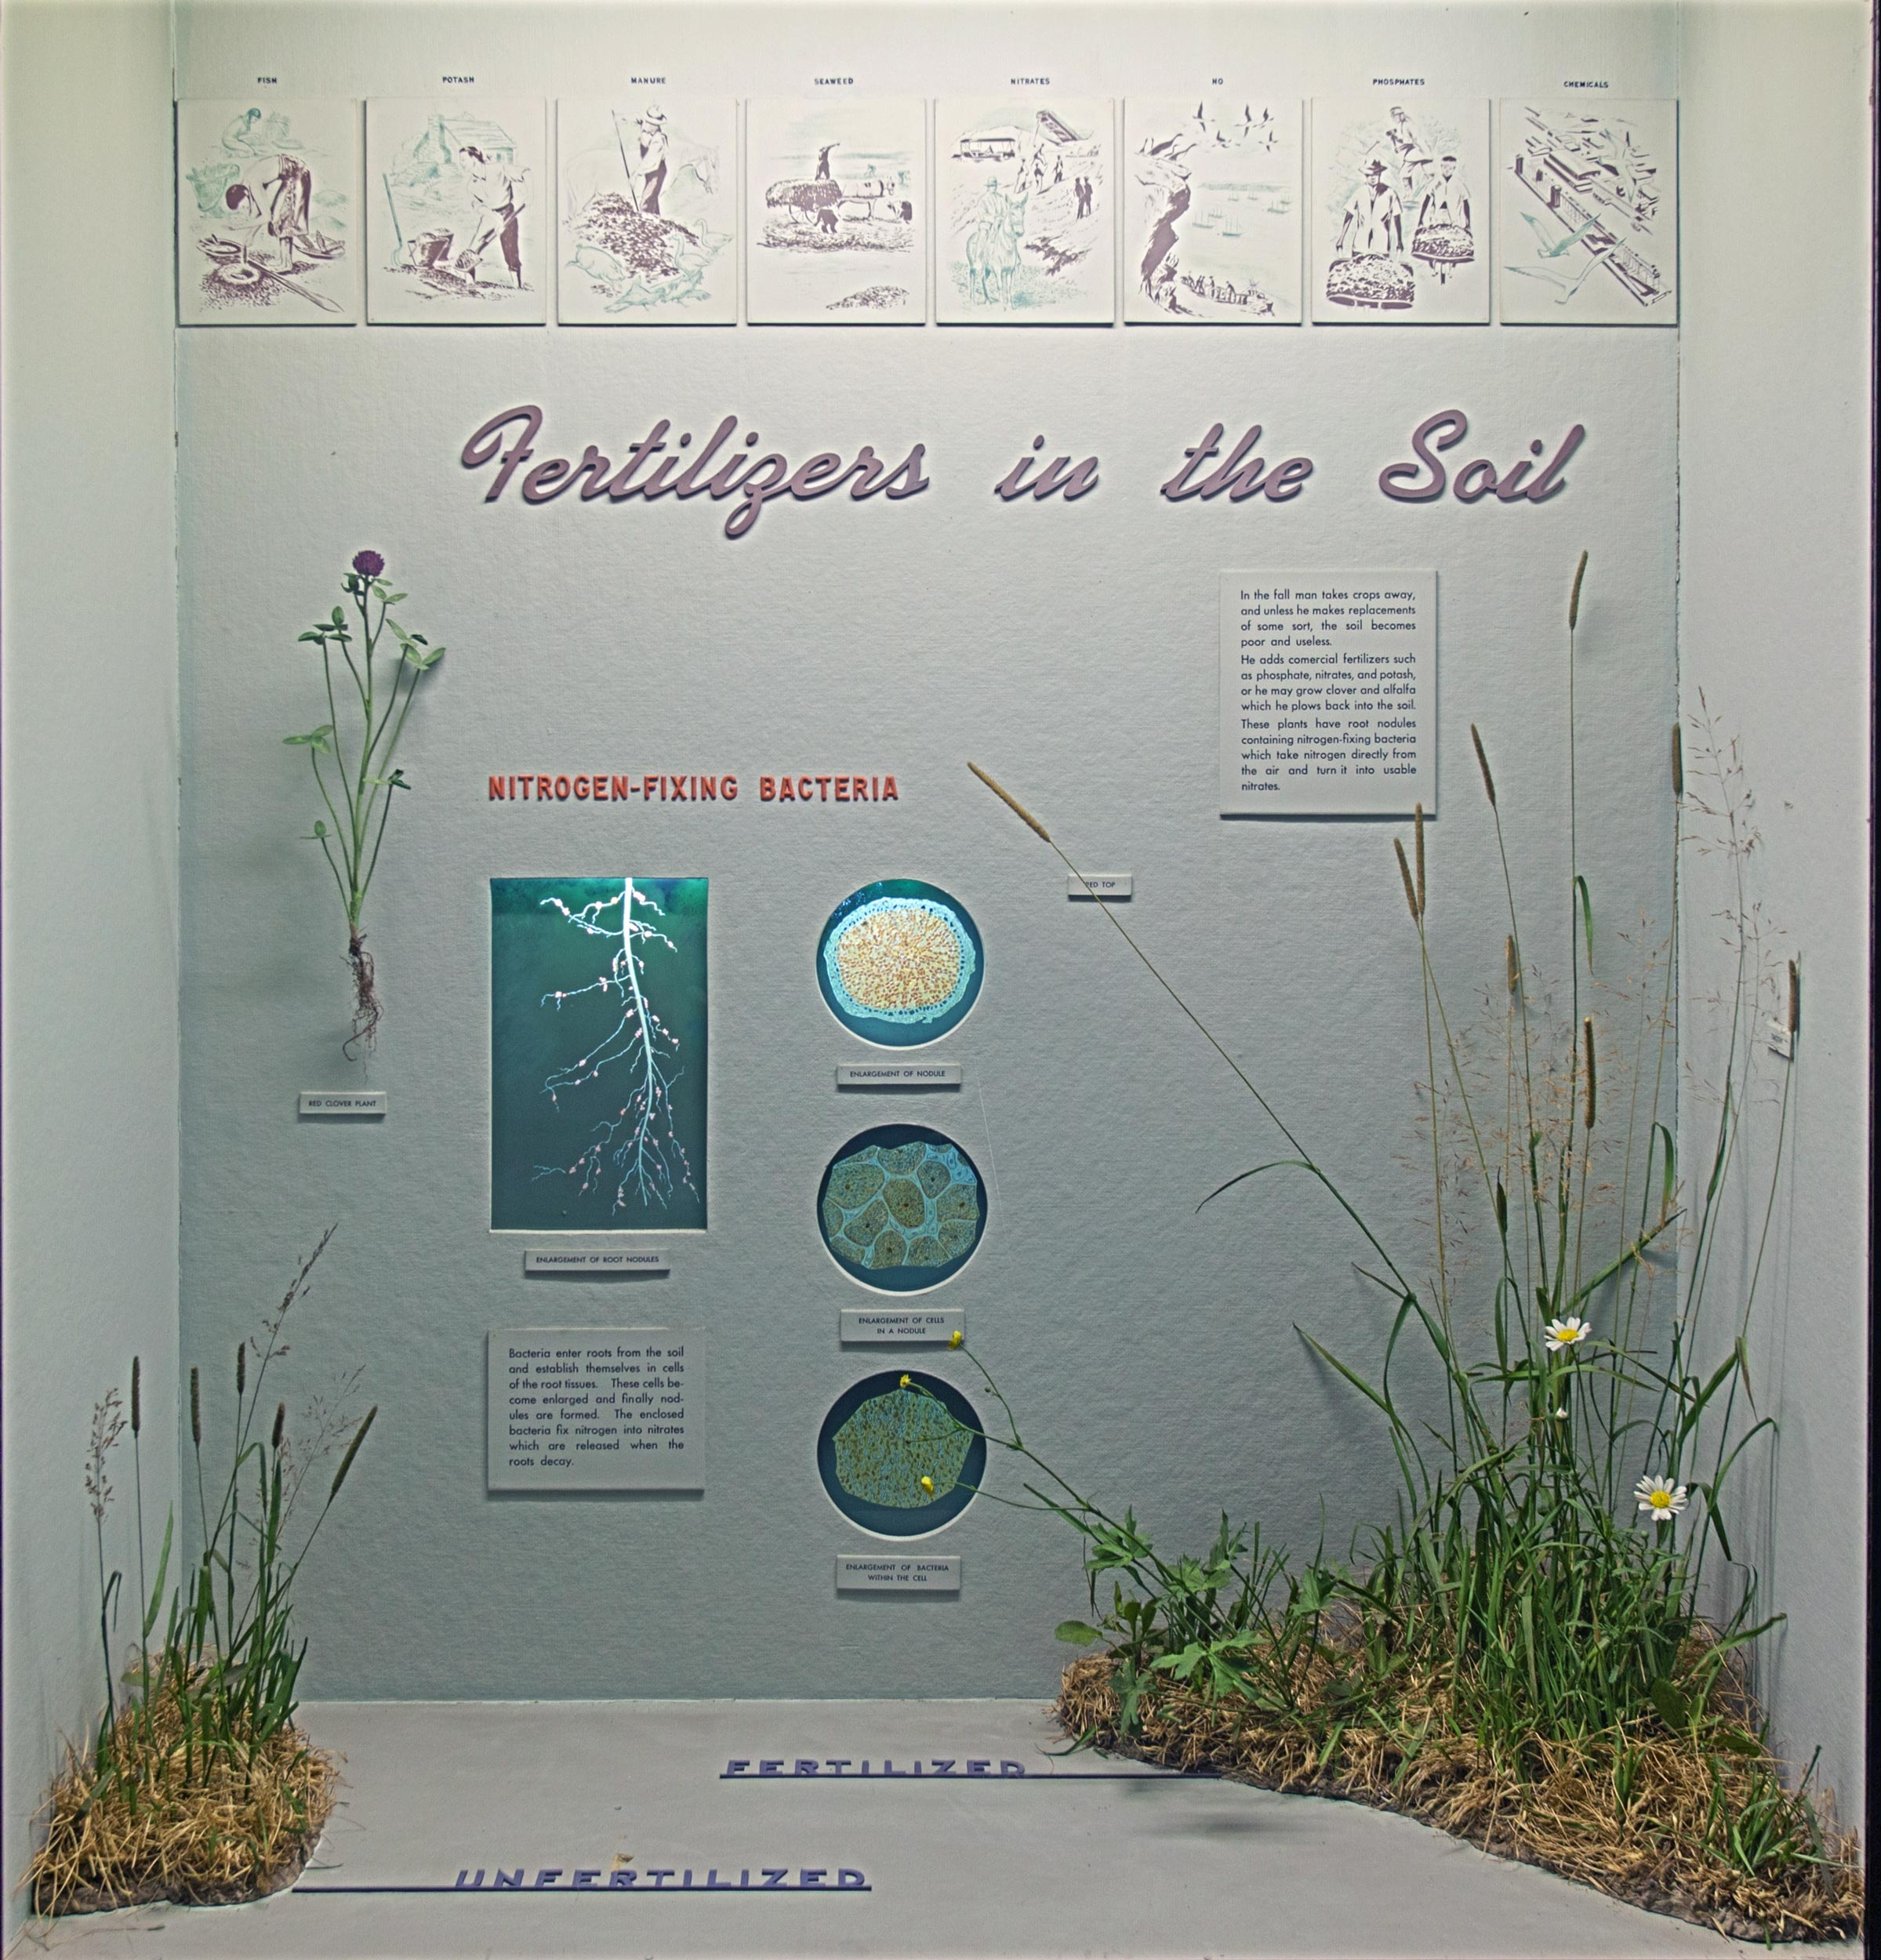 Museum case showing illustrations, diagrams and models of the fertilizers in the soil and their effects in vegetation.